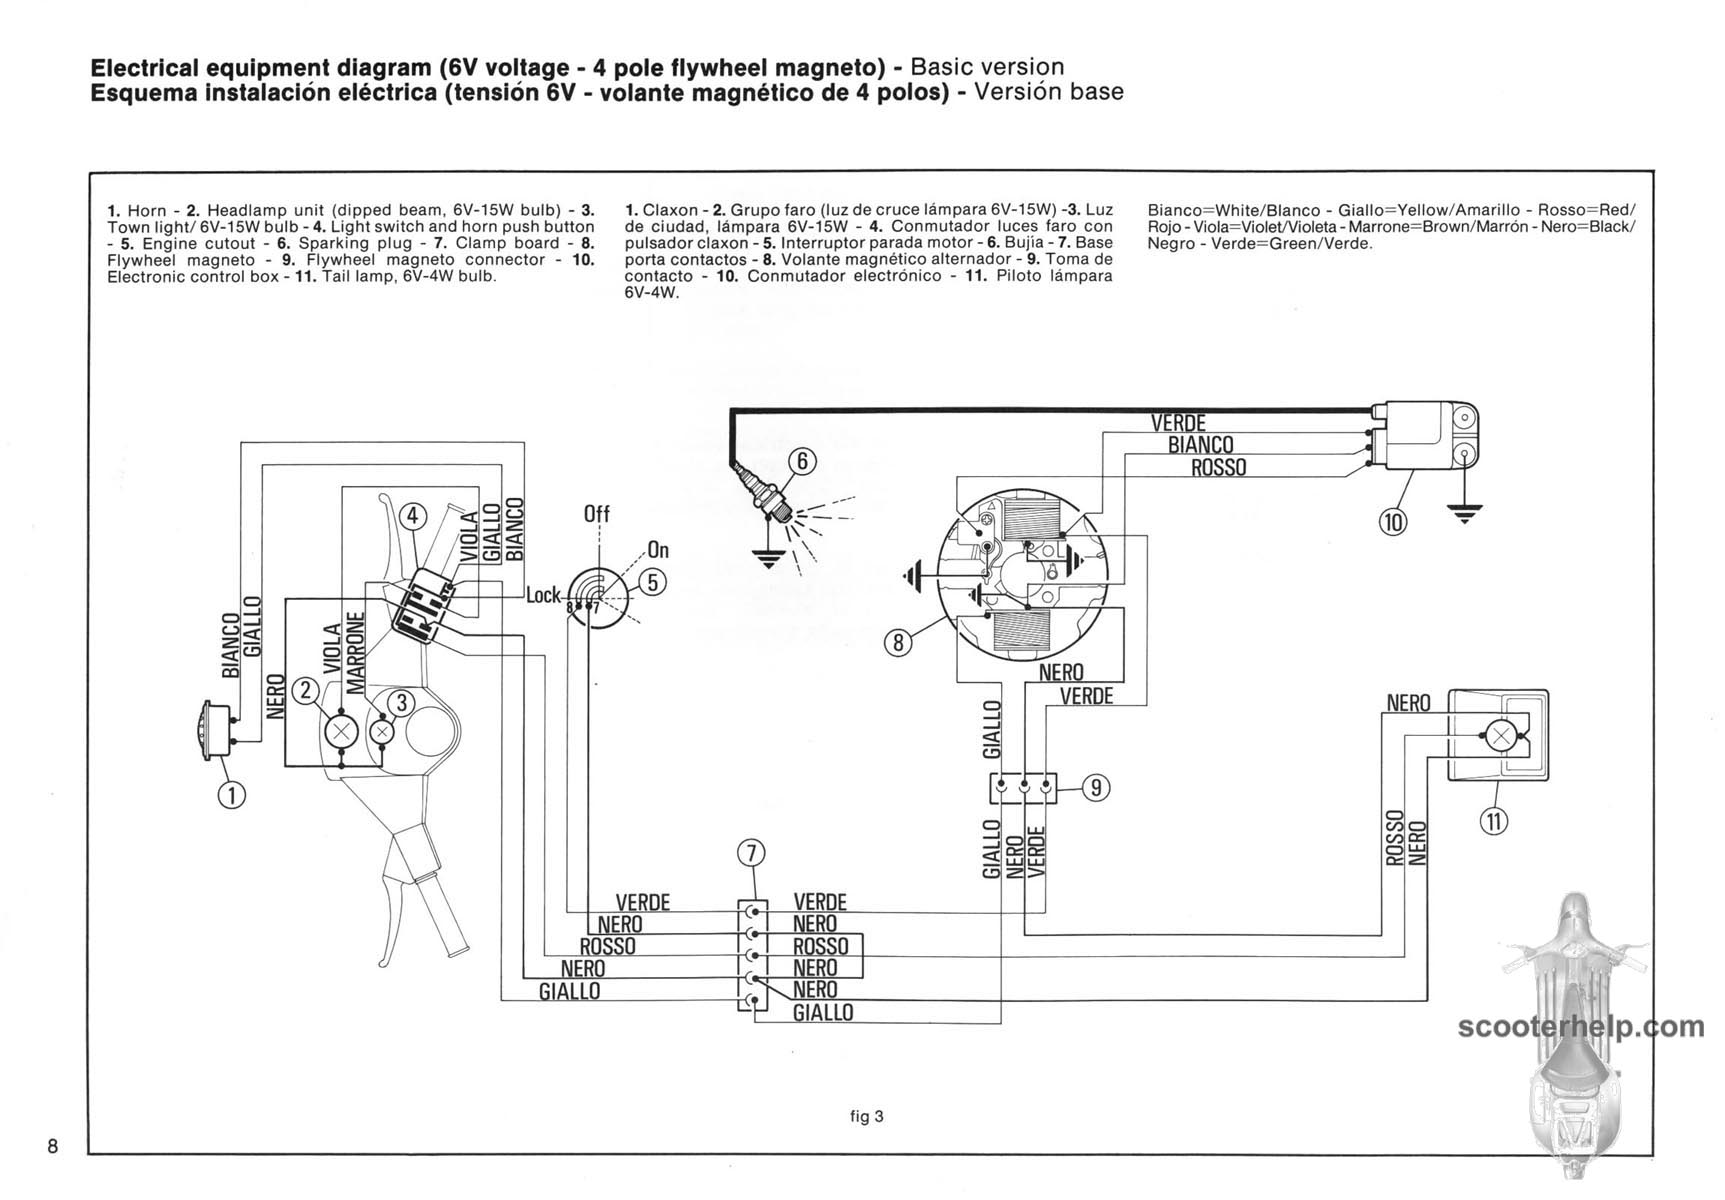 Pk Factory Repair Manual Electrical Drawing Pdf File If You Prefer A Of All The Pages Click Here For 149mb Download